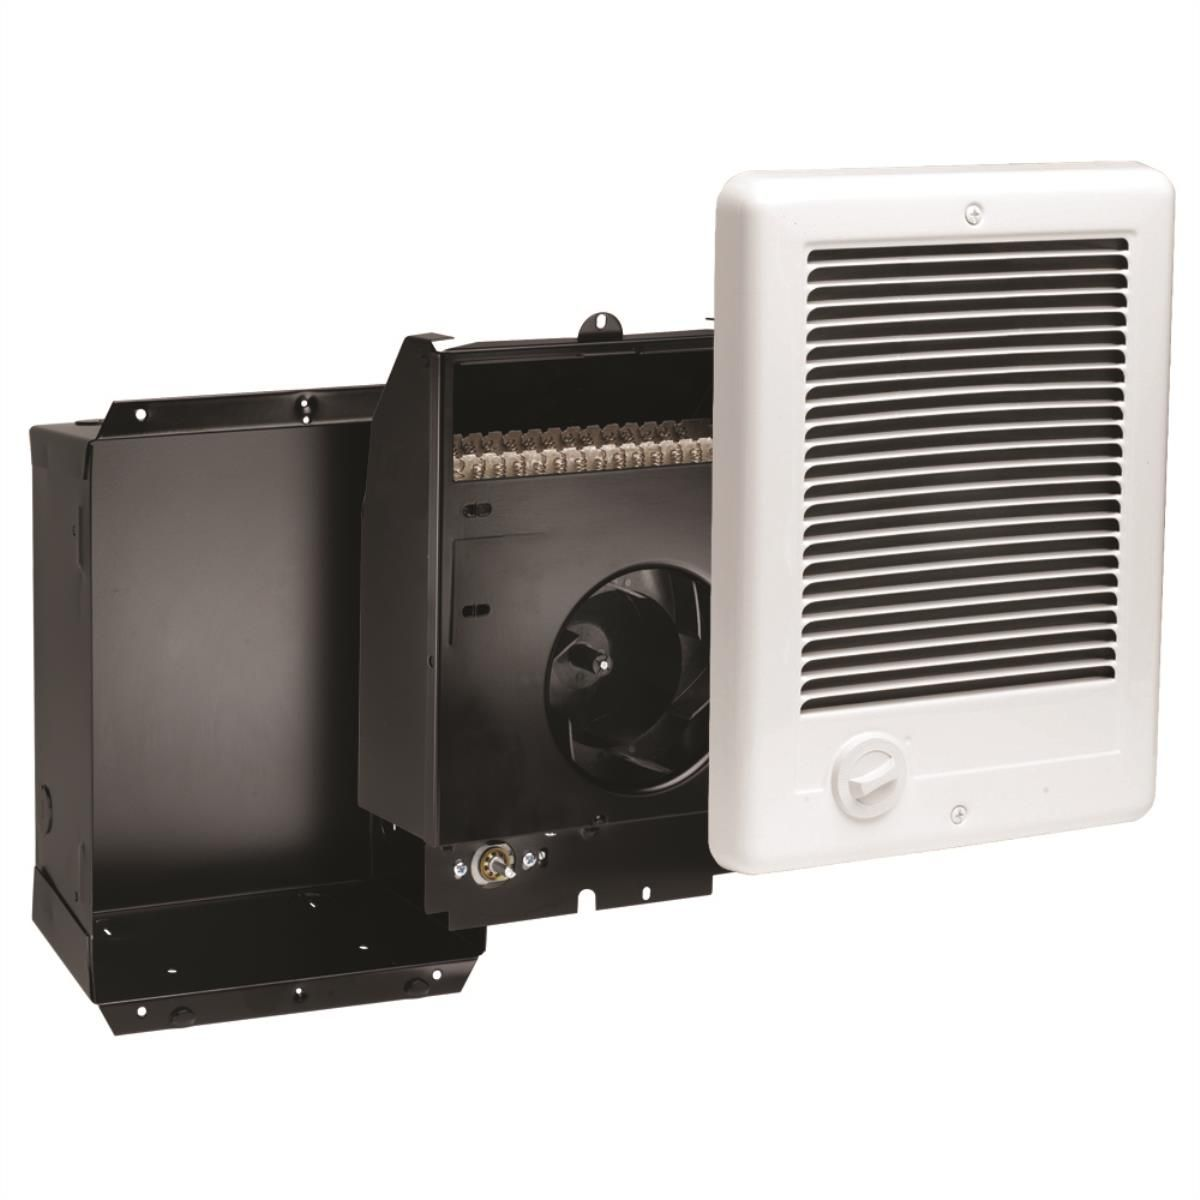 The Cadet Csc101tw Com Pak 1000w 120v Wall Heater Is A Popular Offering From Electric Heater Wall Mounted Heater Heater